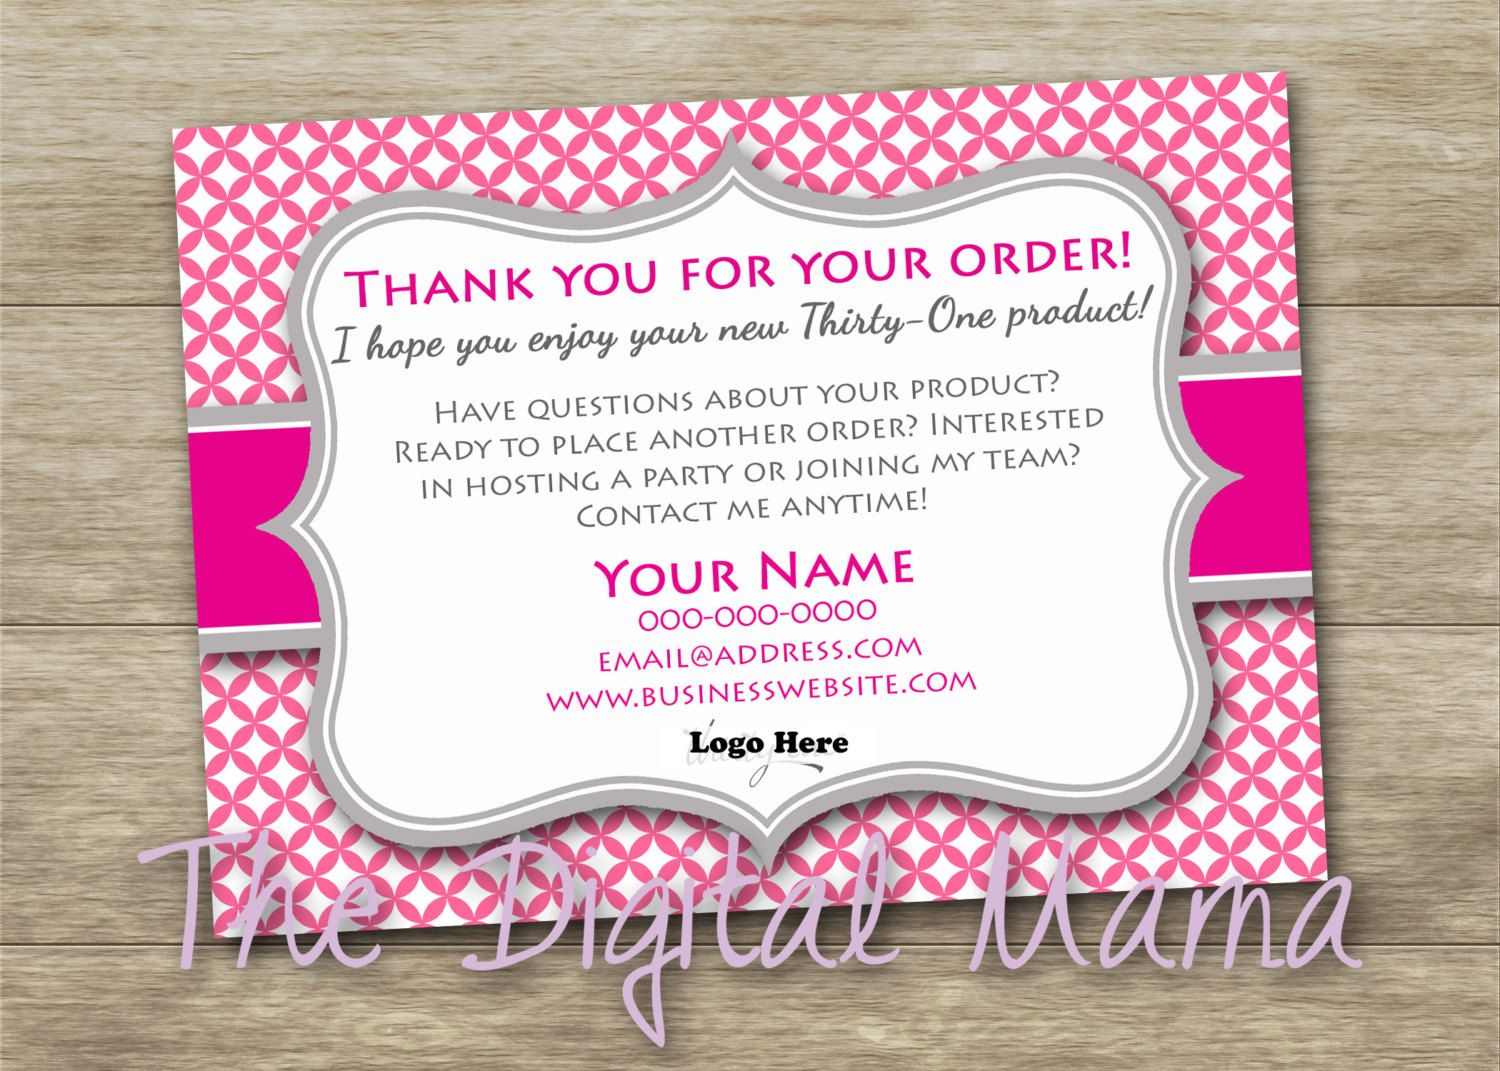 thirty-one customer thank you postcard - thirty-one order postcard